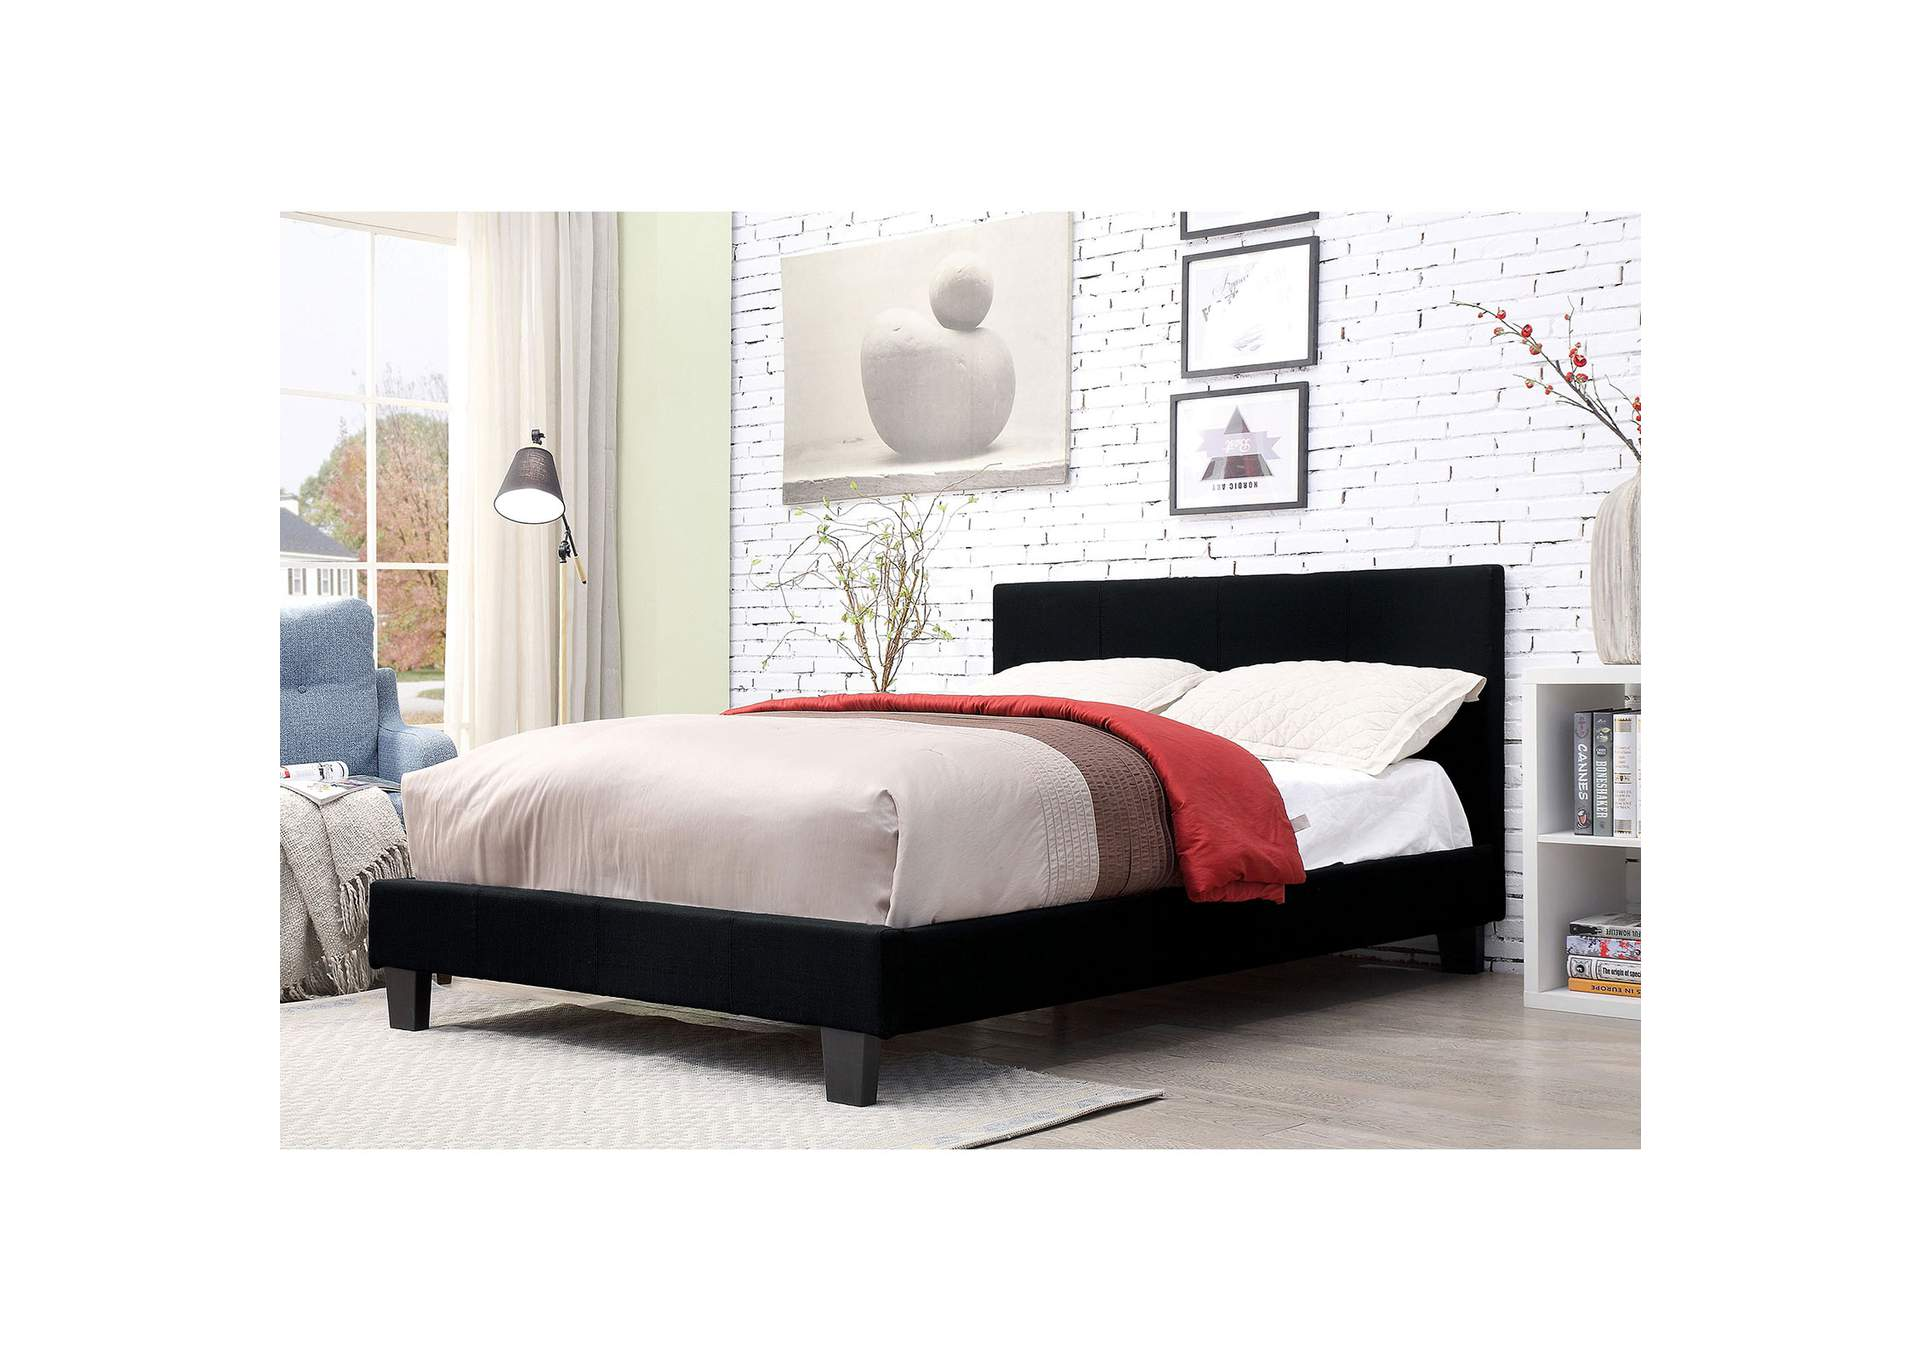 Sims Black Full Bed,Furniture of America